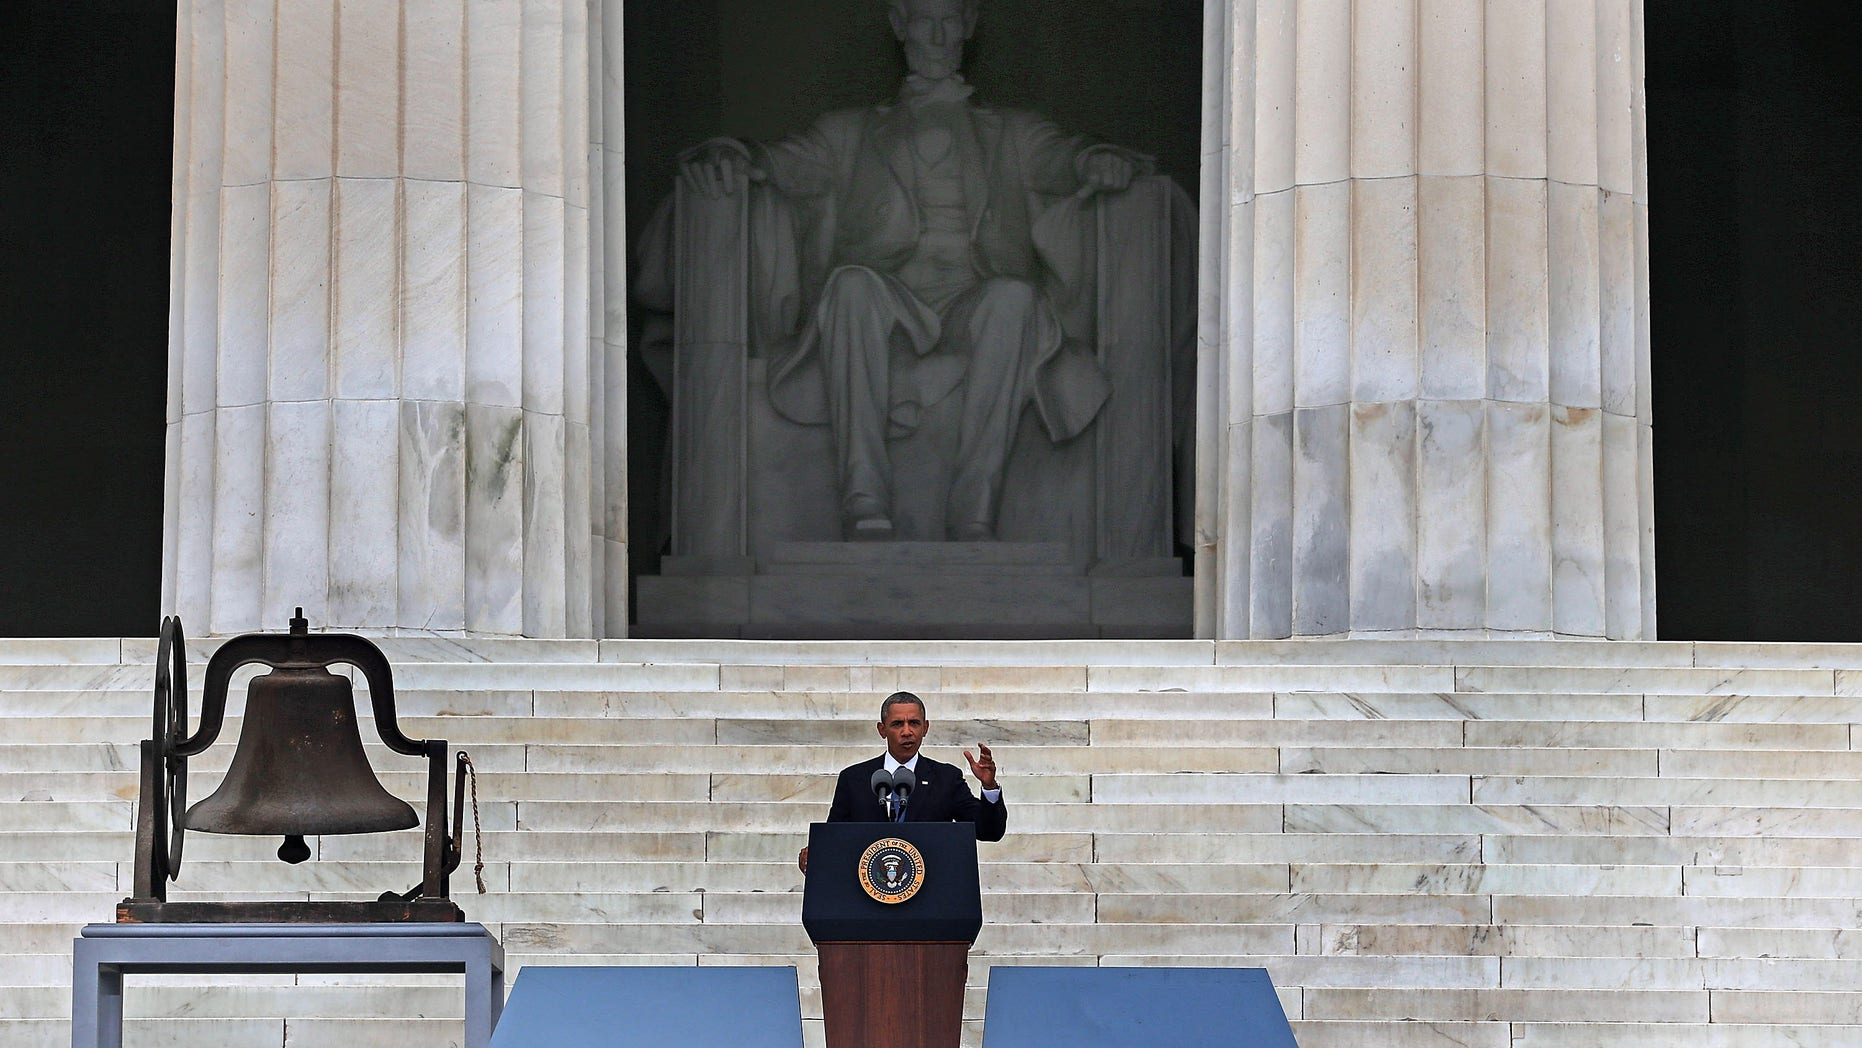 """WASHINGTON, DC - AUGUST 28:  U.S. President Barack Obama speaks during the ceremony to commemorate the 50th anniversary of the March on Washington for Jobs and Freedom August 28, 2013 in Washington, DC. It was 50 years ago today that Martin Luther King, Jr. delivered his """"I Have A Dream Speech"""" on the steps of the Lincoln Memorial. (Photo by Mark Wilson/Getty Images)"""